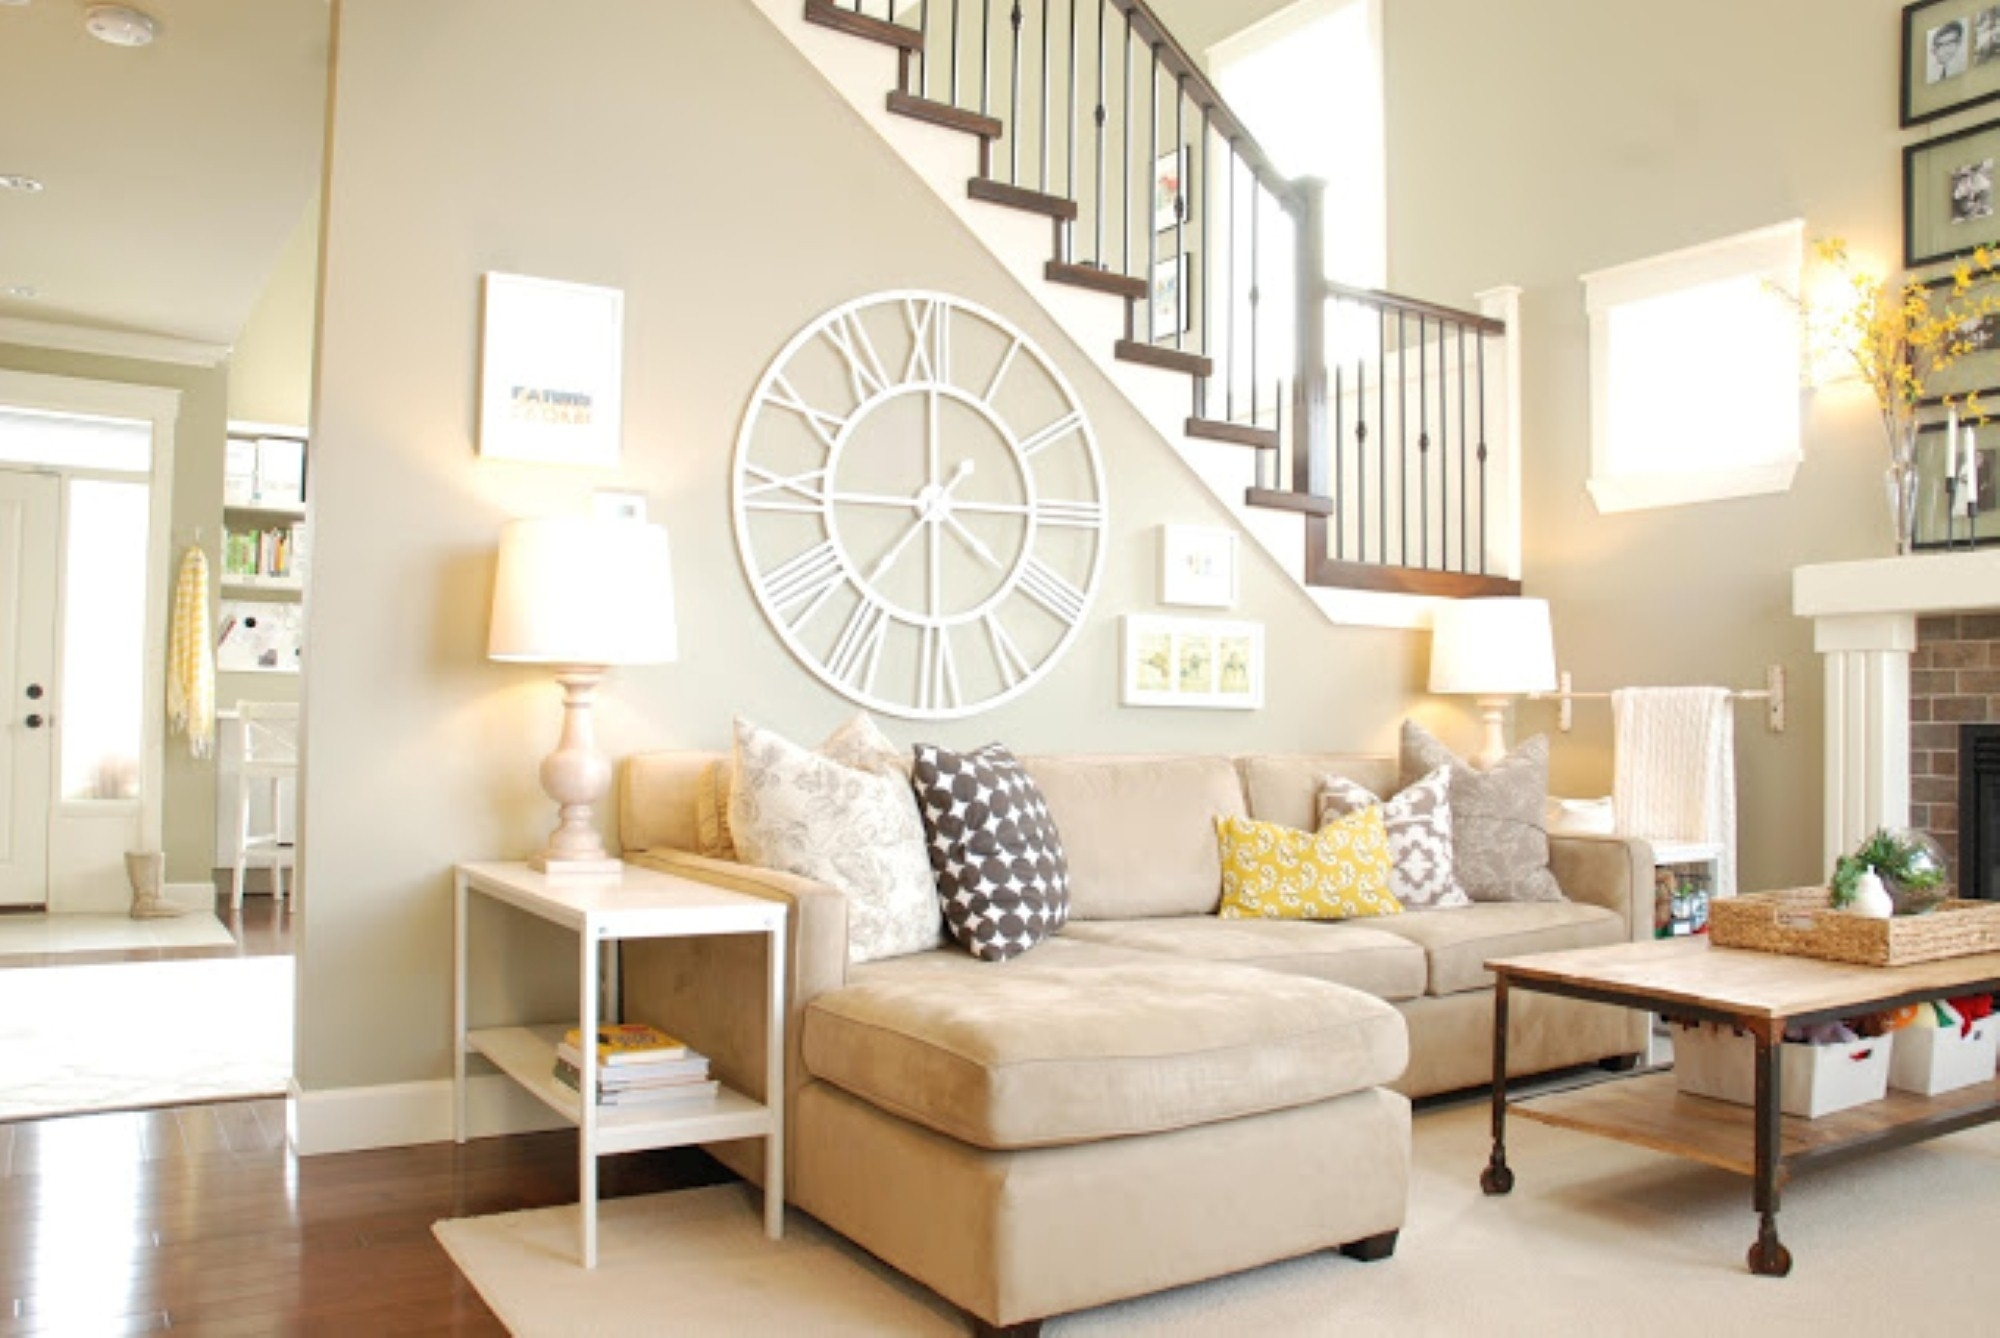 Fabulous White Fabric Sectional Sofa Plus Colorful Cushions And Pertaining To Most Recent Creative Fabric Wall Art (View 9 of 15)